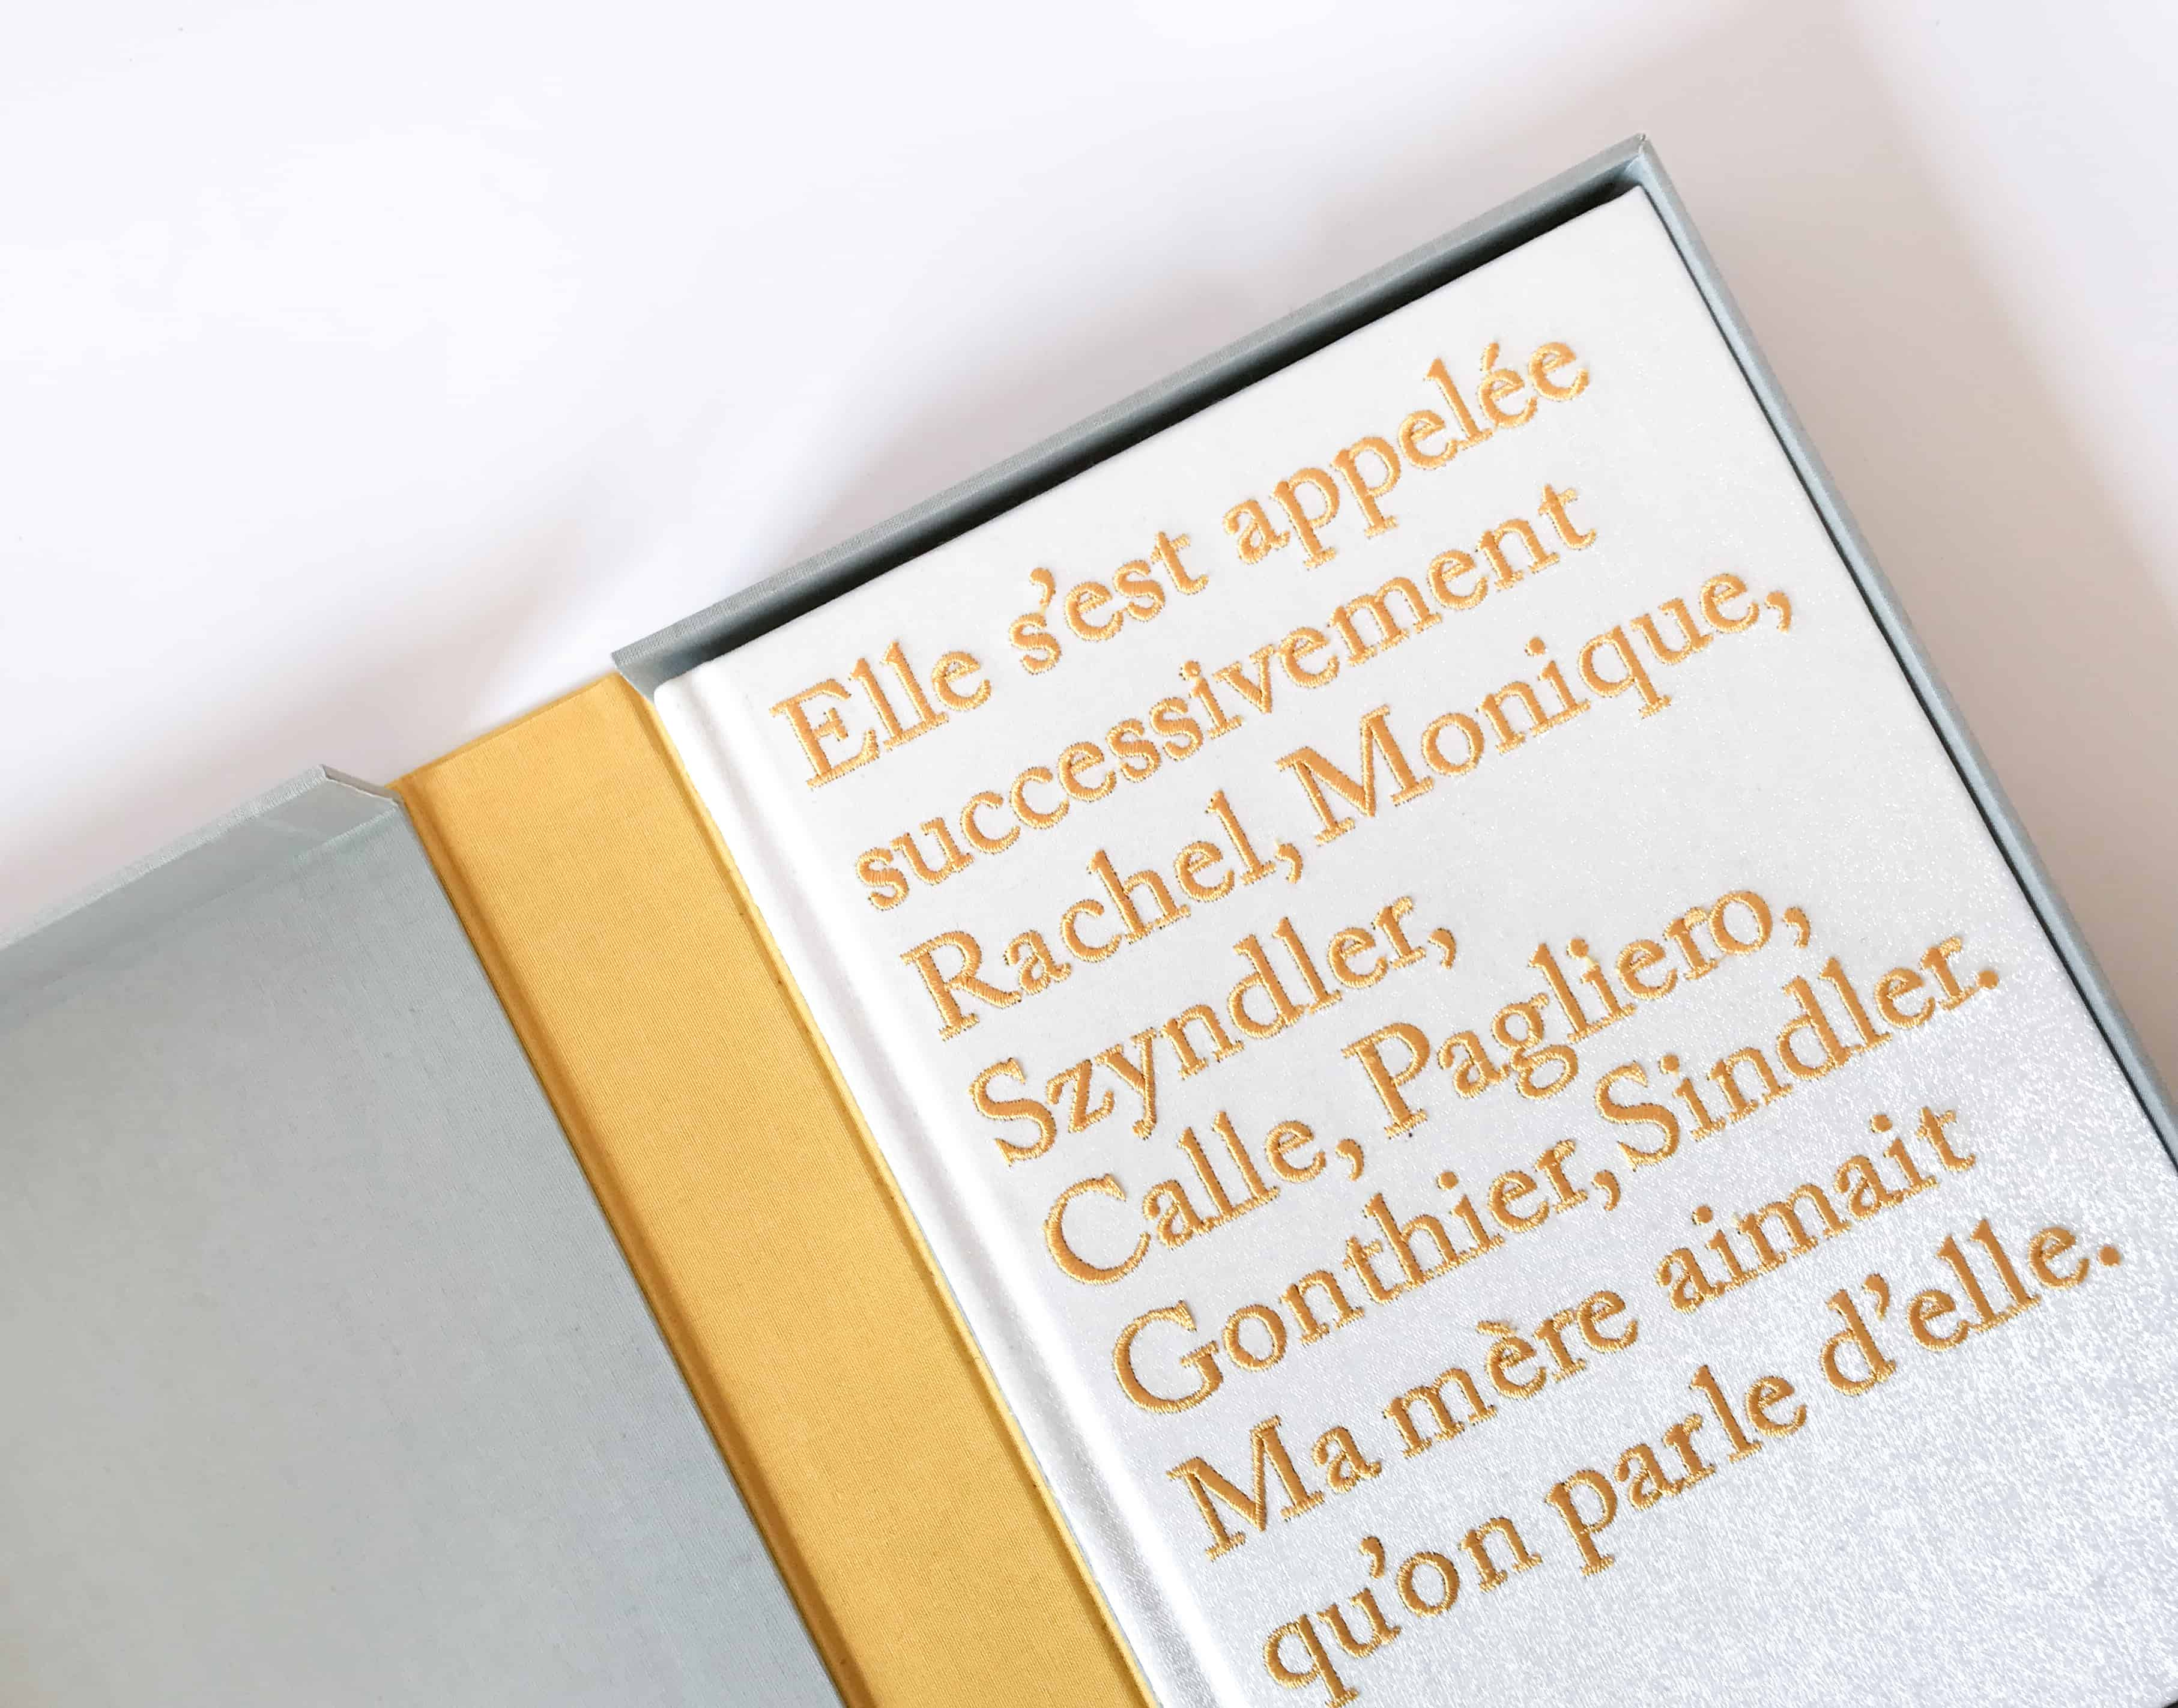 Camille Stoffel Miscellaneous Bindings →